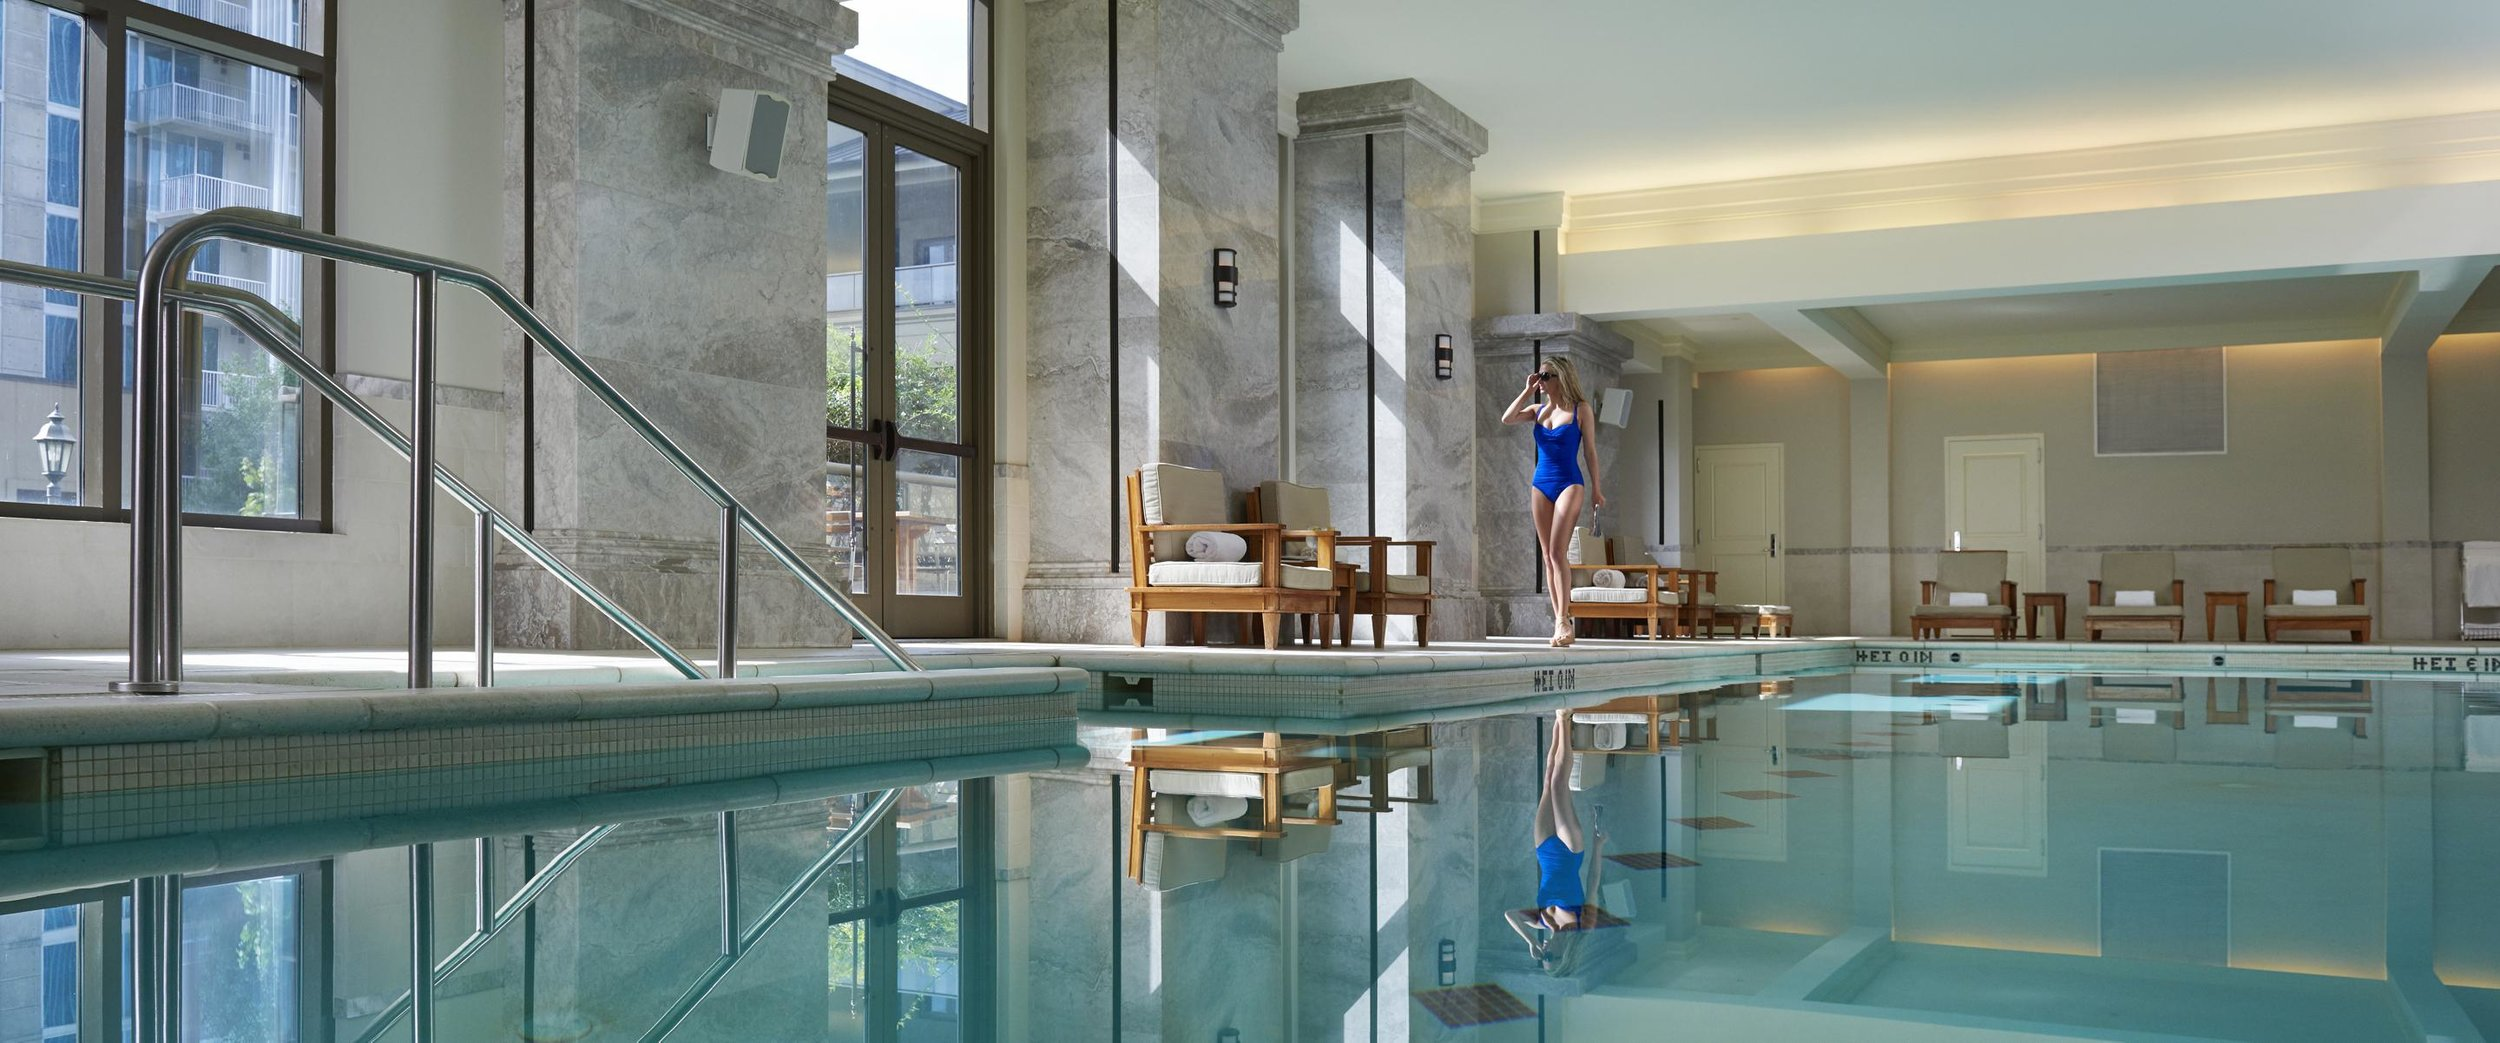 atlanta-14-luxury-spa-swimming-pool-03.jpg